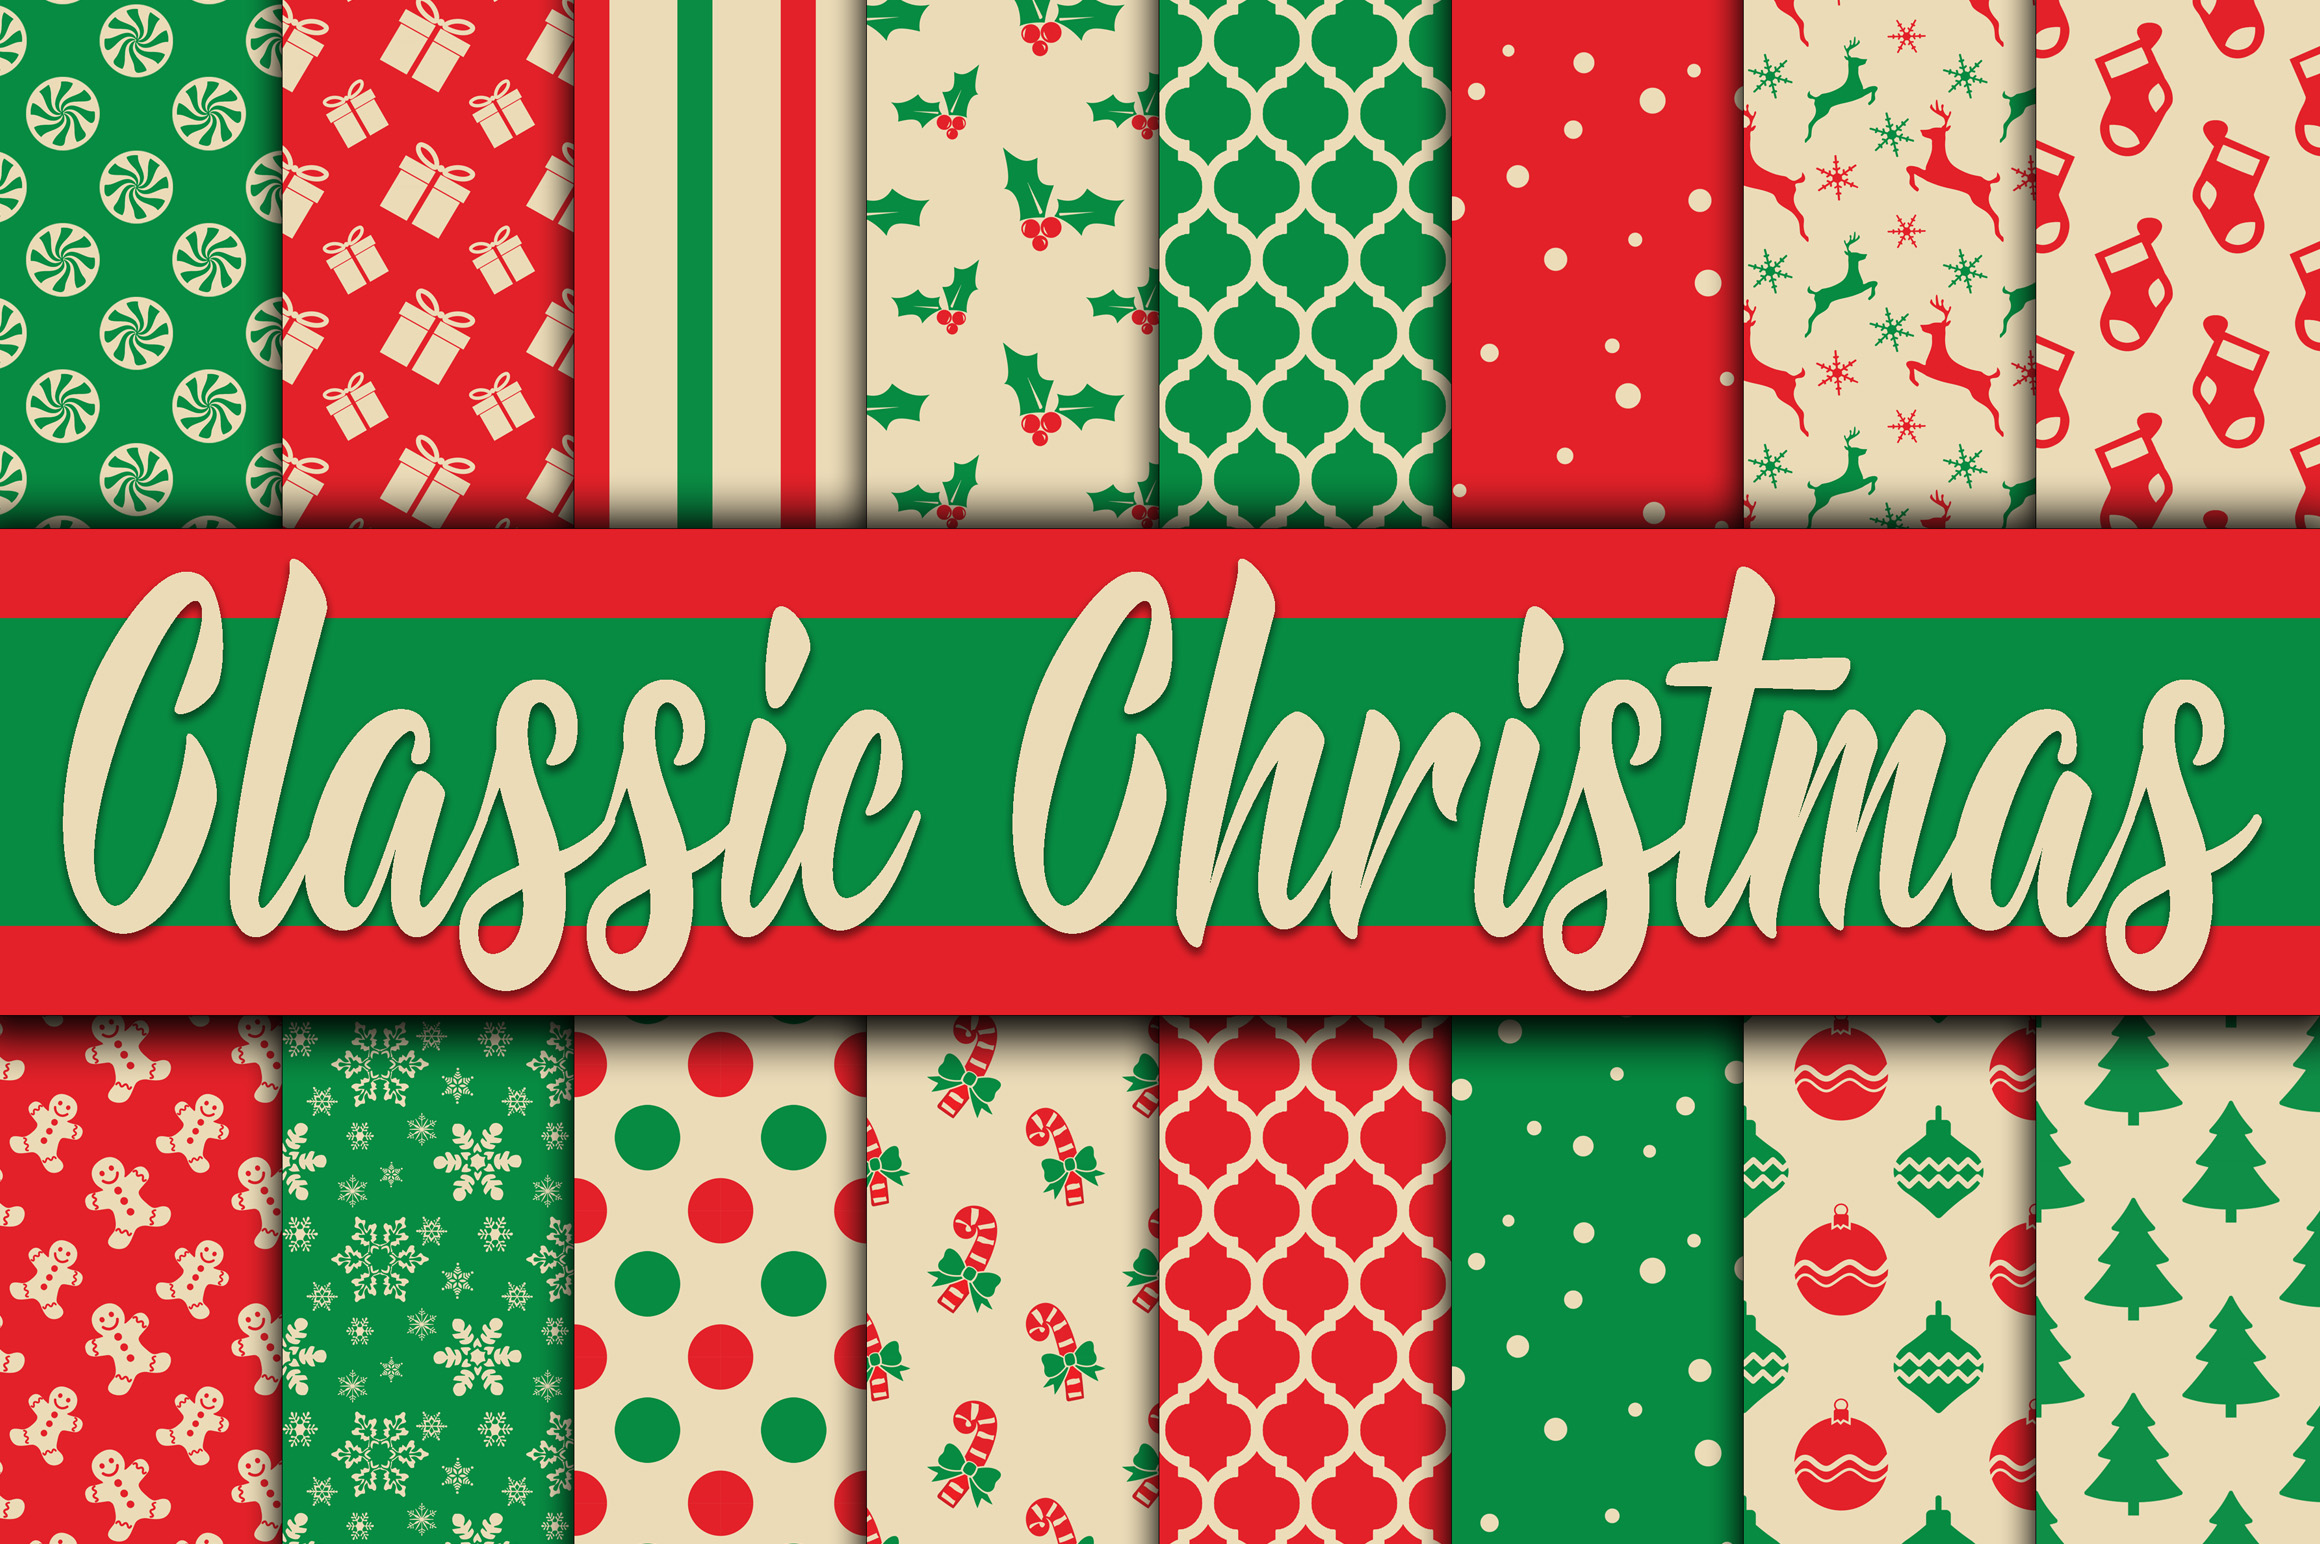 Download Free Classic Christmas Digital Paper Graphic By Oldmarketdesigns for Cricut Explore, Silhouette and other cutting machines.